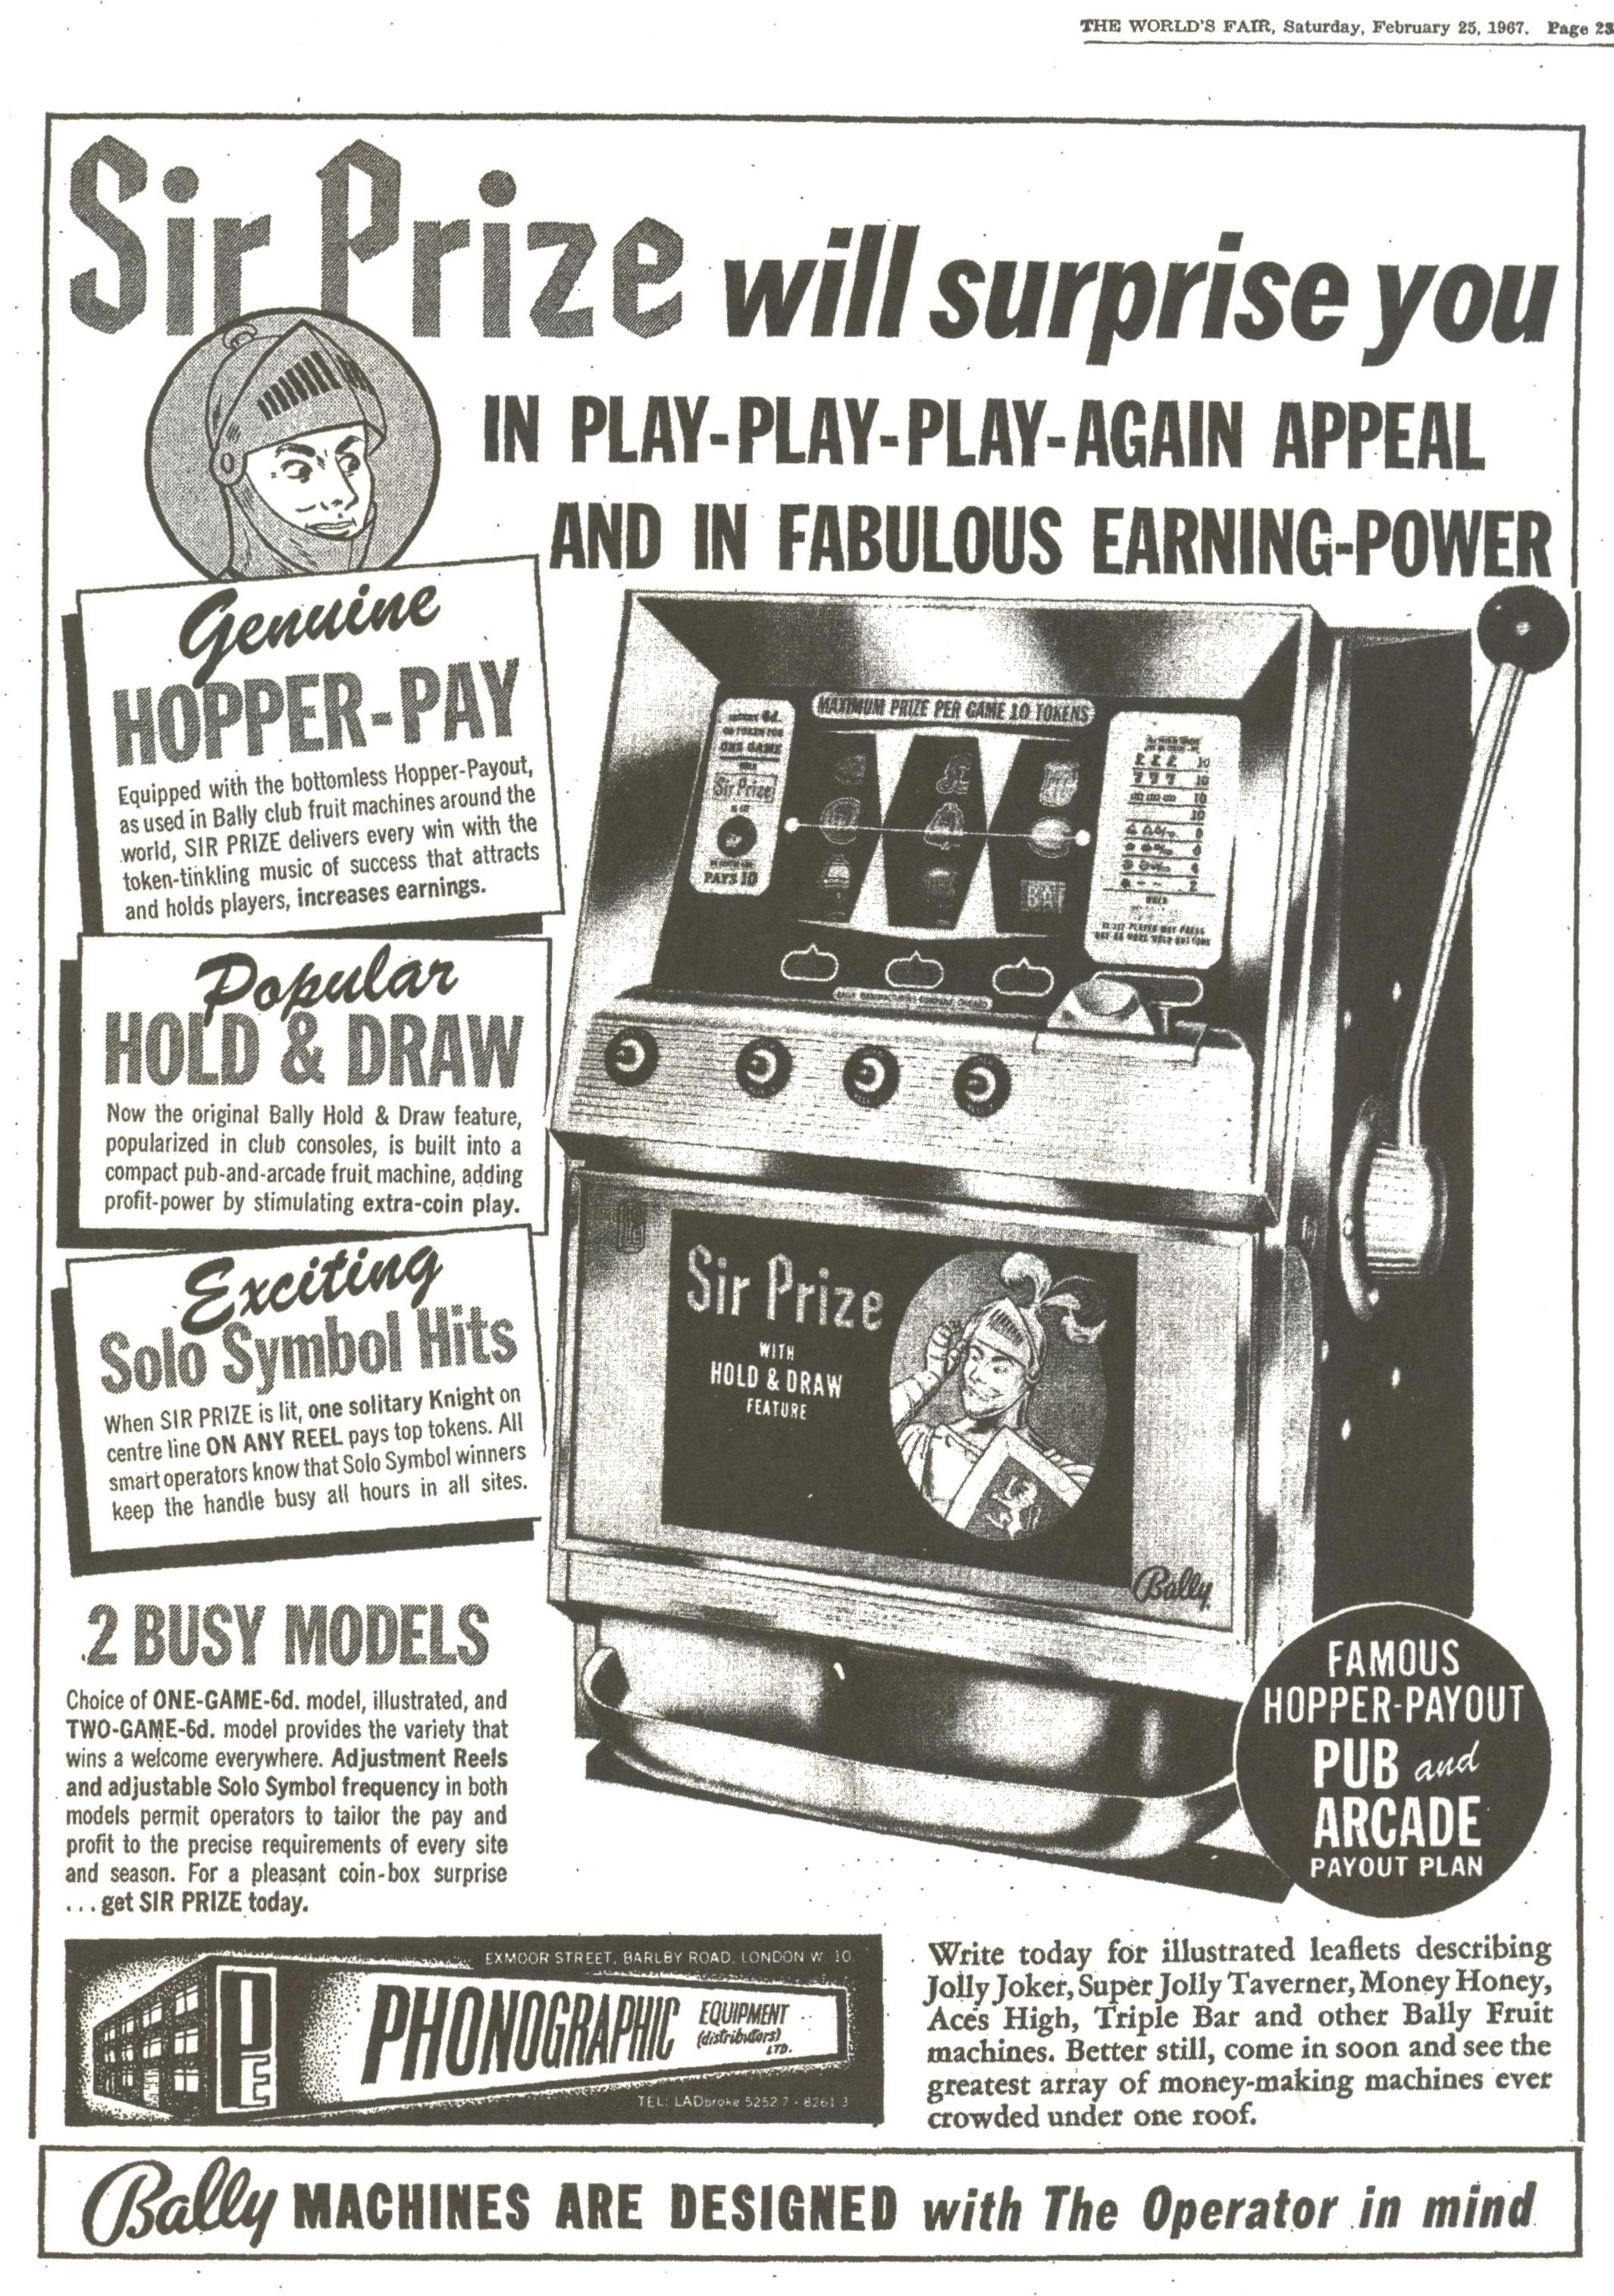 4. Bally Sir Prize English Pub Model add Feb 16th 1967.jpg